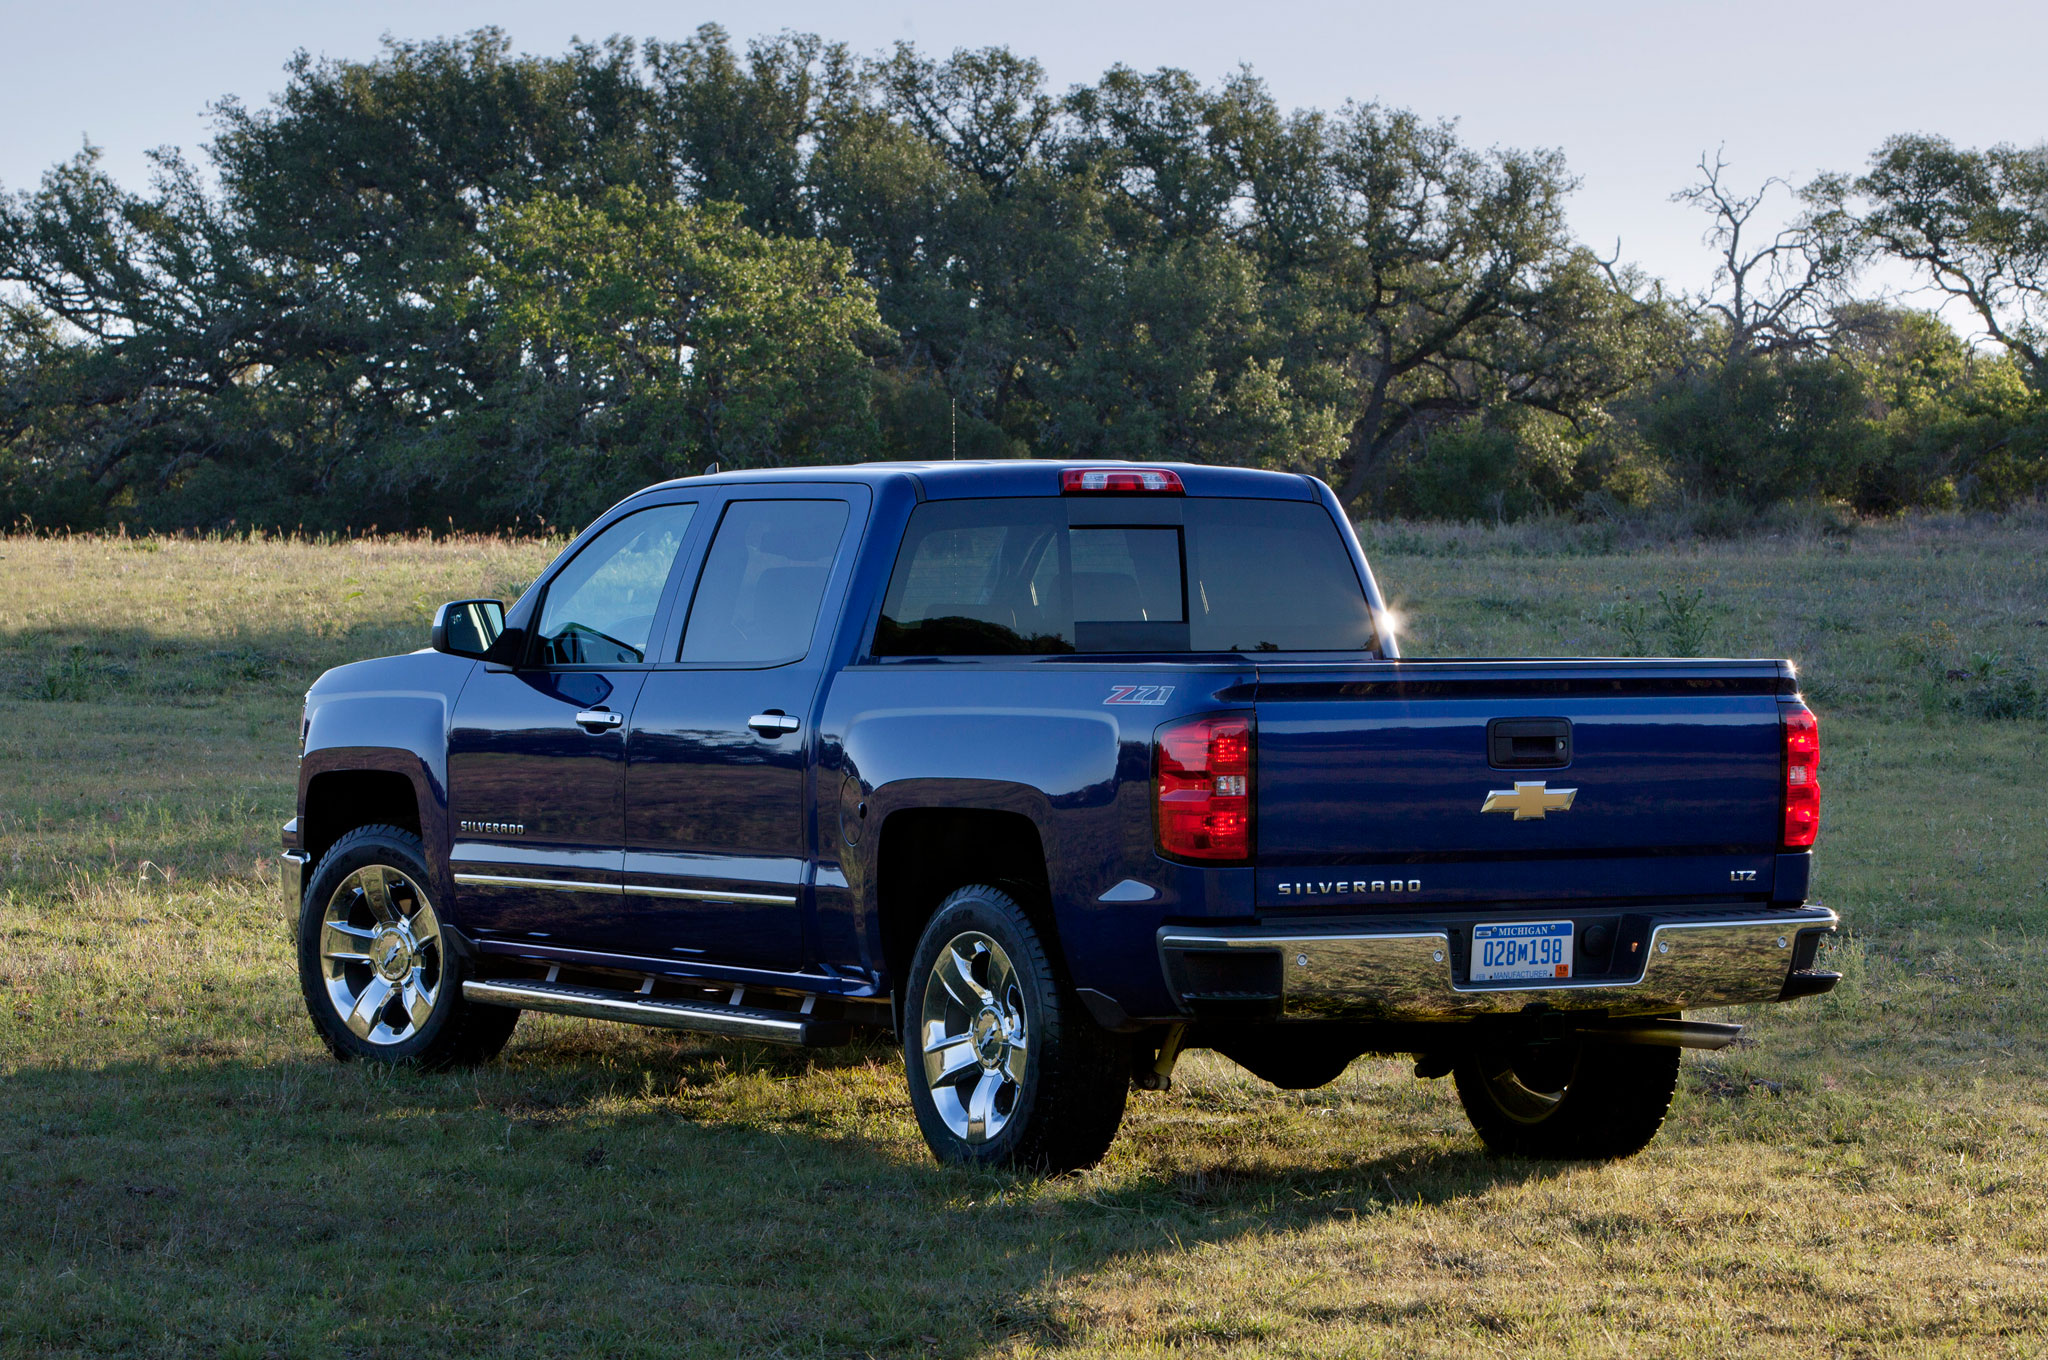 2014 Chevrolet Silverado Left Rear Angle1